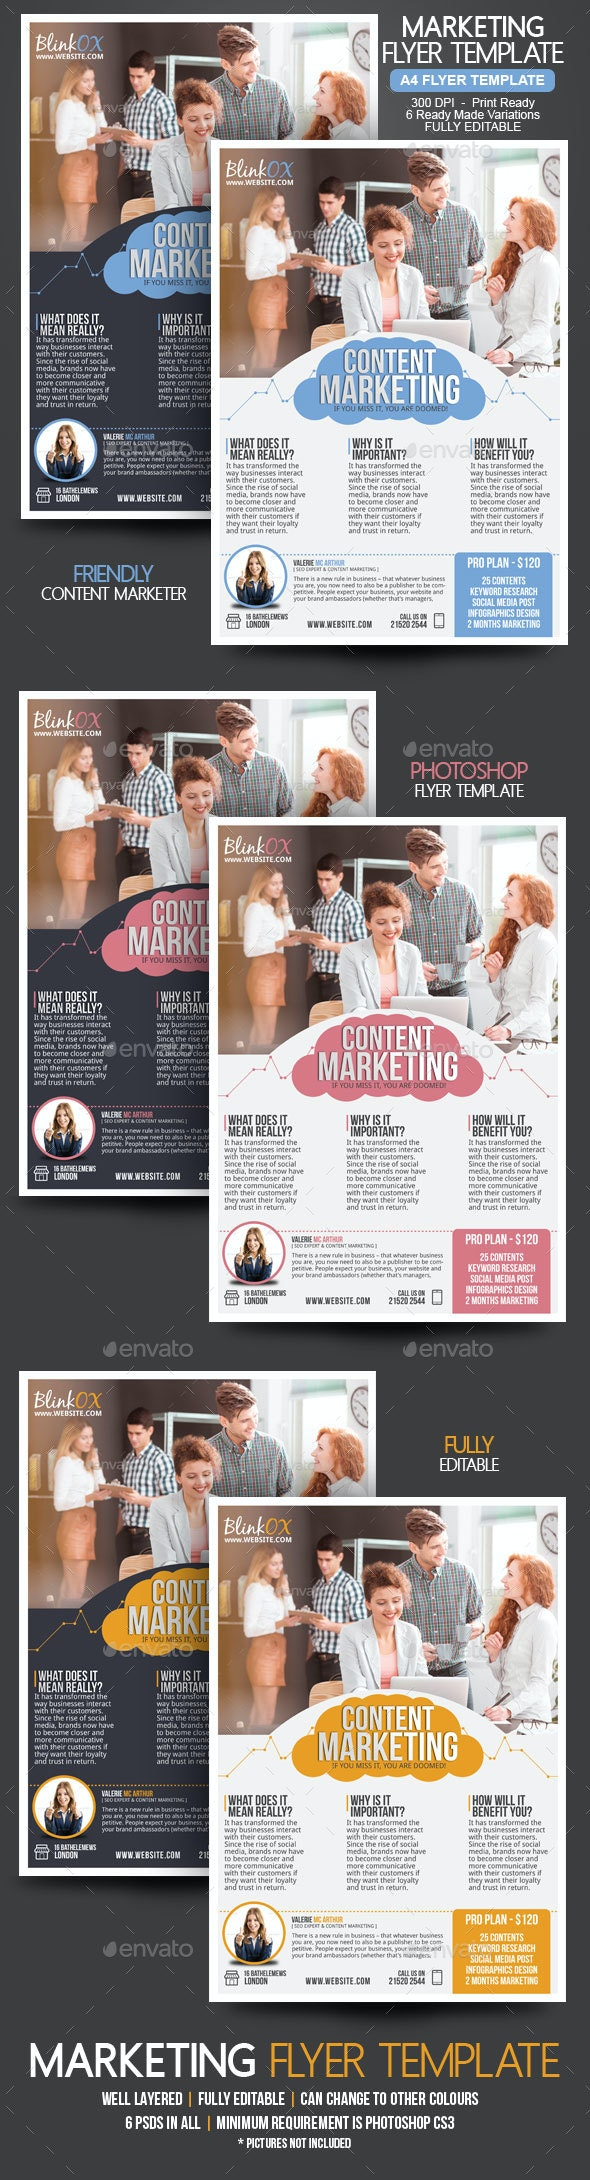 Content Marketing Flyer - Corporate Flyers